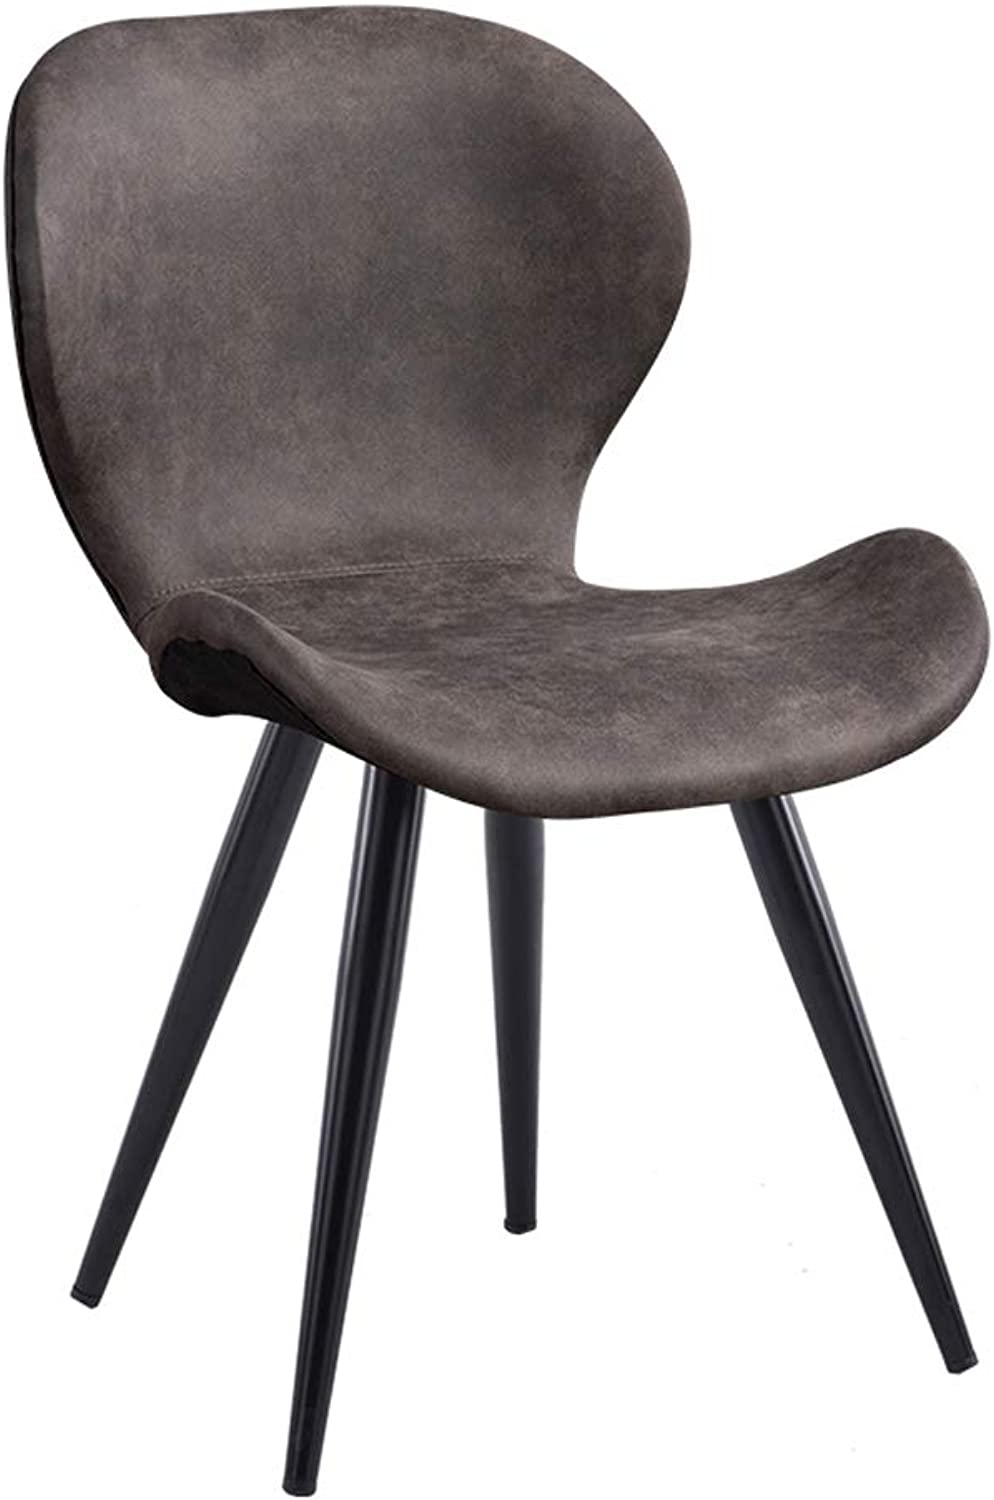 Office Chair Dining Chairs Wooden Seat Barstools Breakfast Stool,Comfortable Backrest Suede Fabric,for Dressing Room Study Room Living Room Dining Room Pub,2 colors